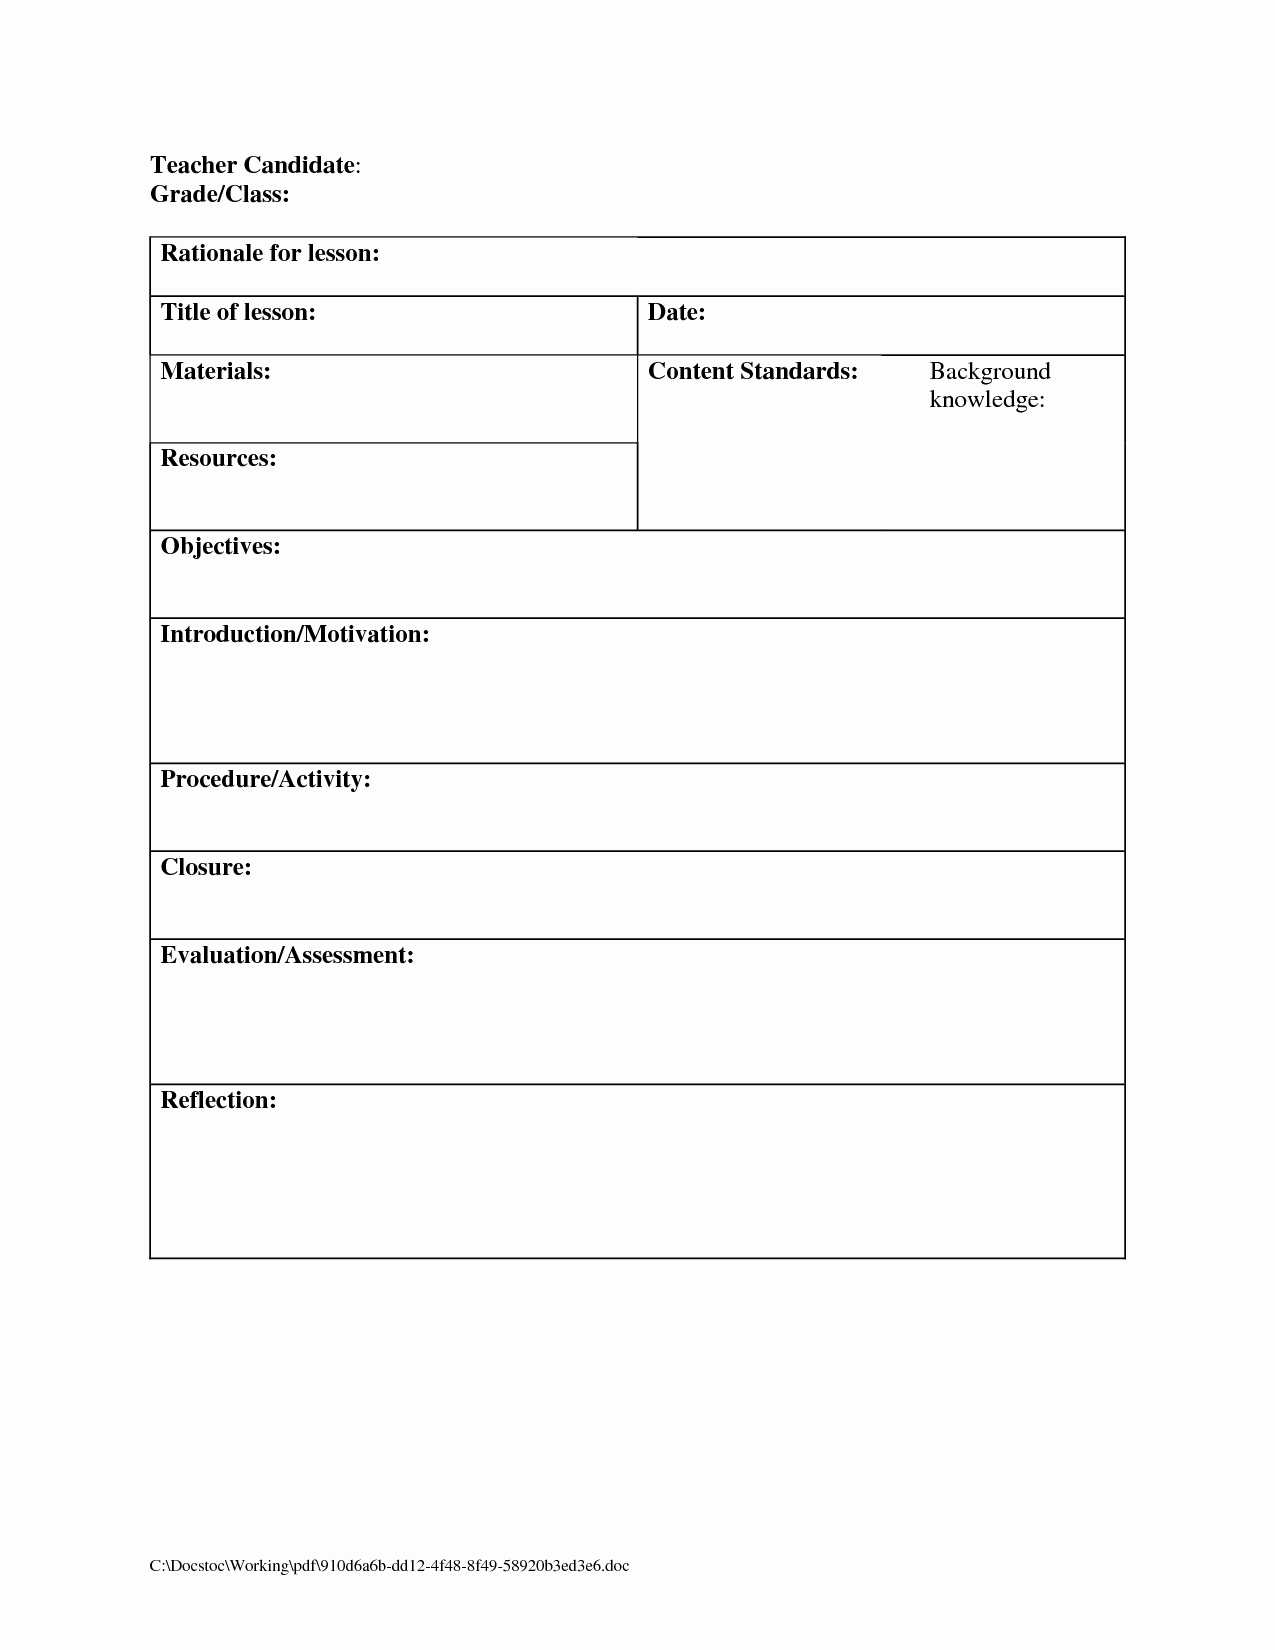 Printable Lesson Plan Template Elegant Printable Blank Lesson Plans form for Counselors